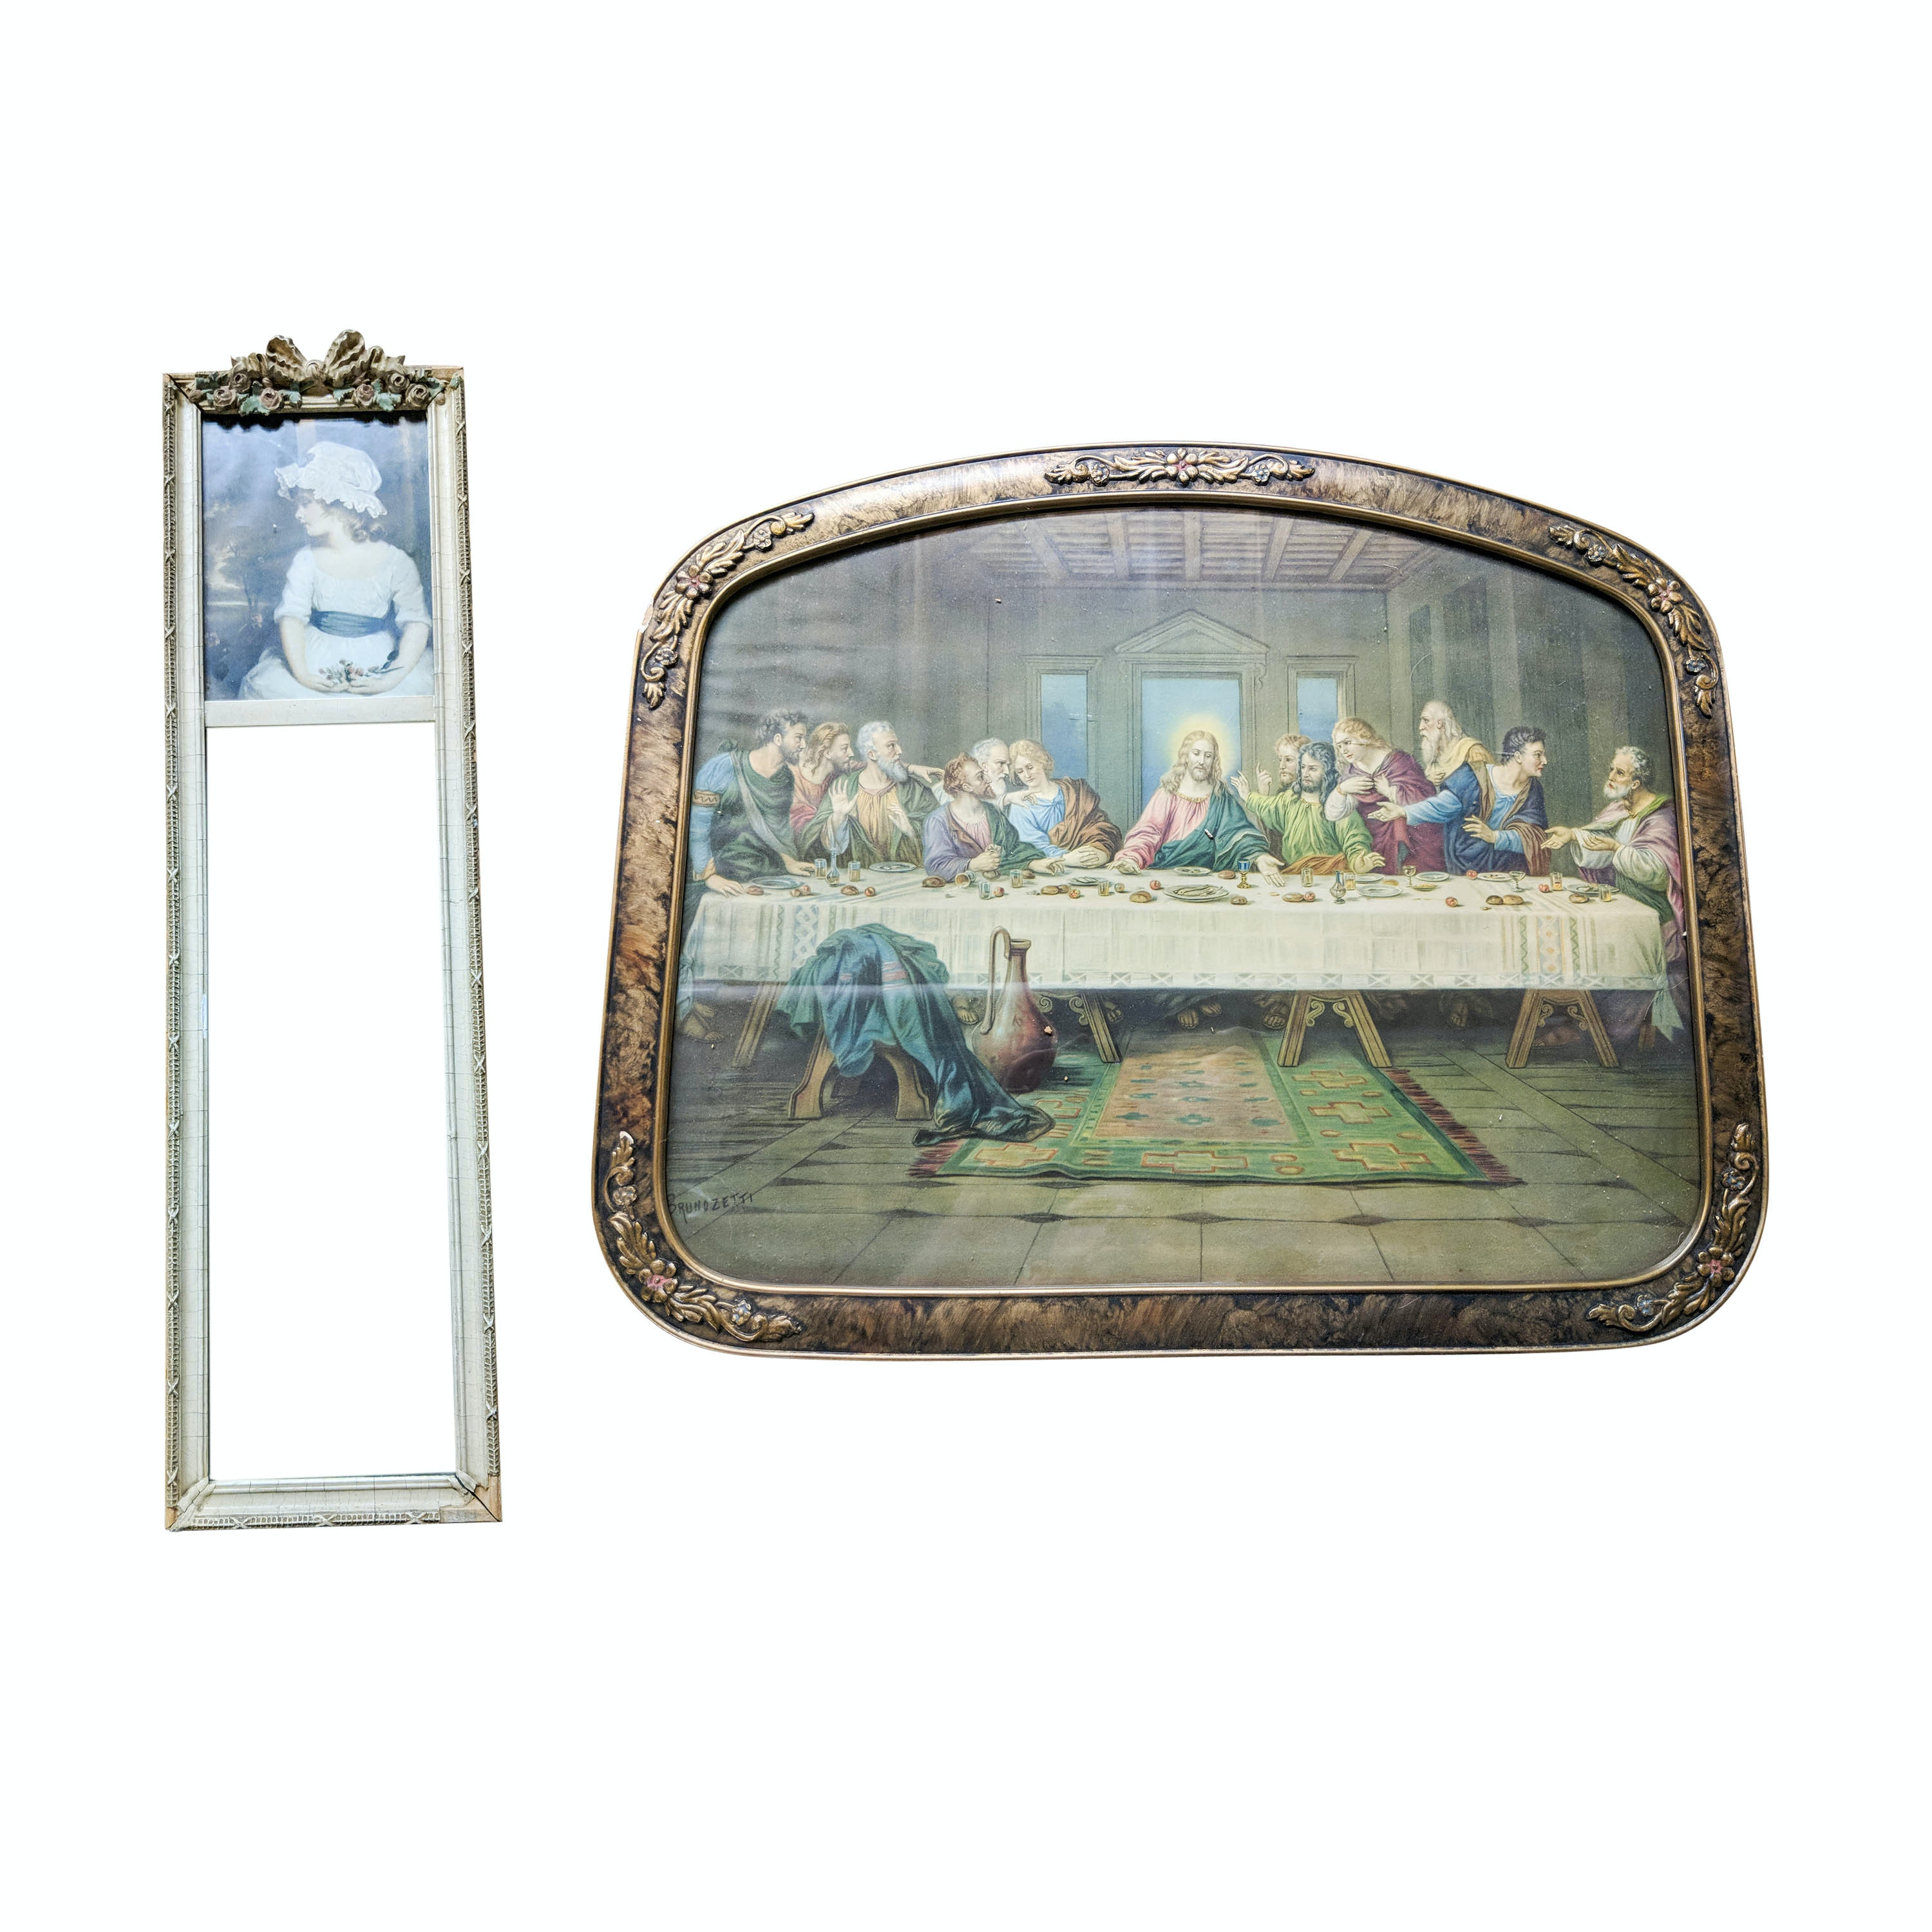 Antique Last Supper Lithograph and Composite Framed Wall Mirror